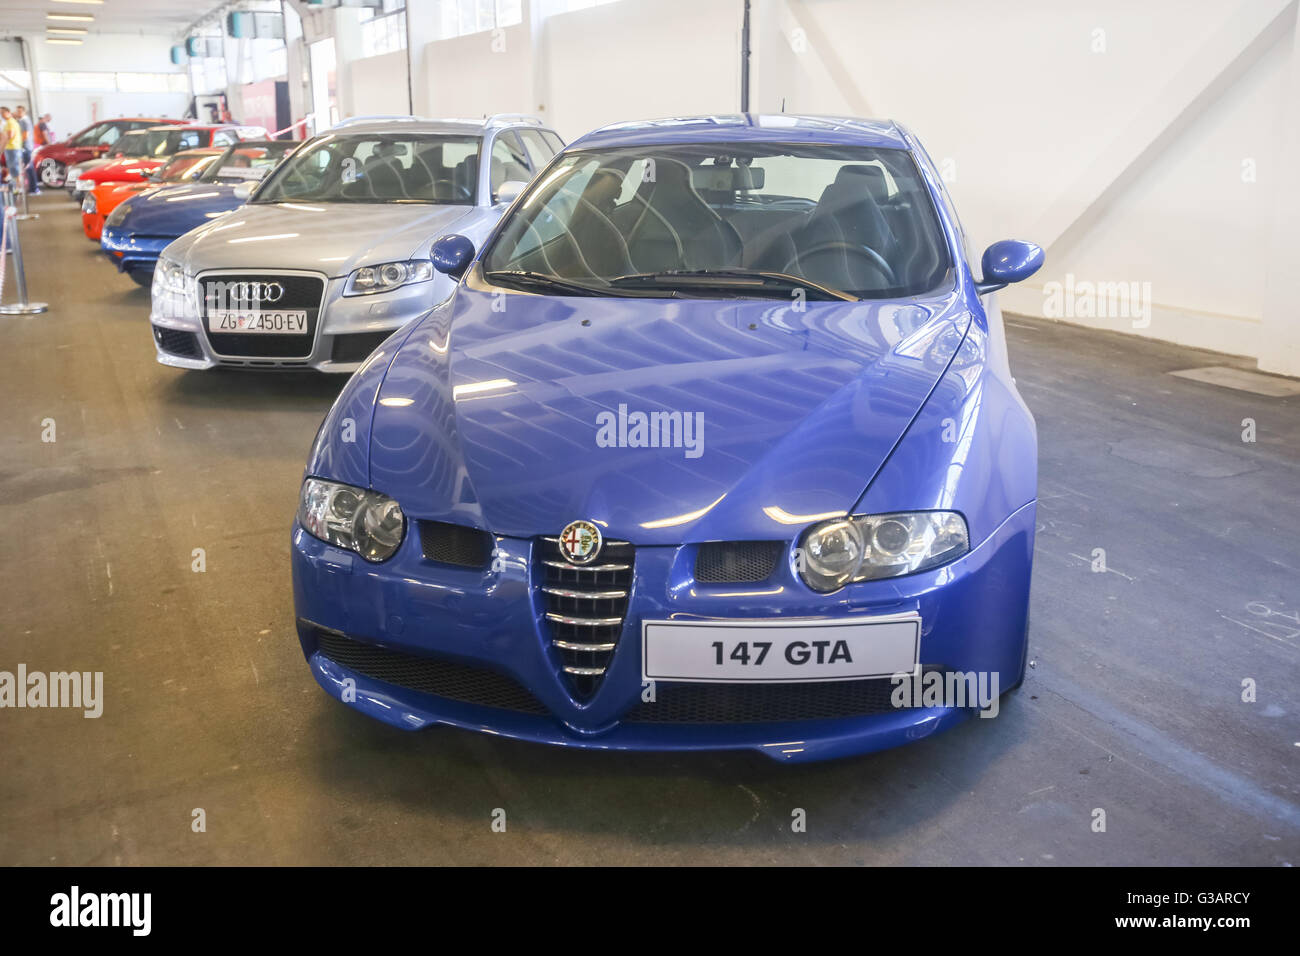 A Alfa Romeo 147 Gta Exhibited At Fast And Furious Street Race In Stock Photo Alamy